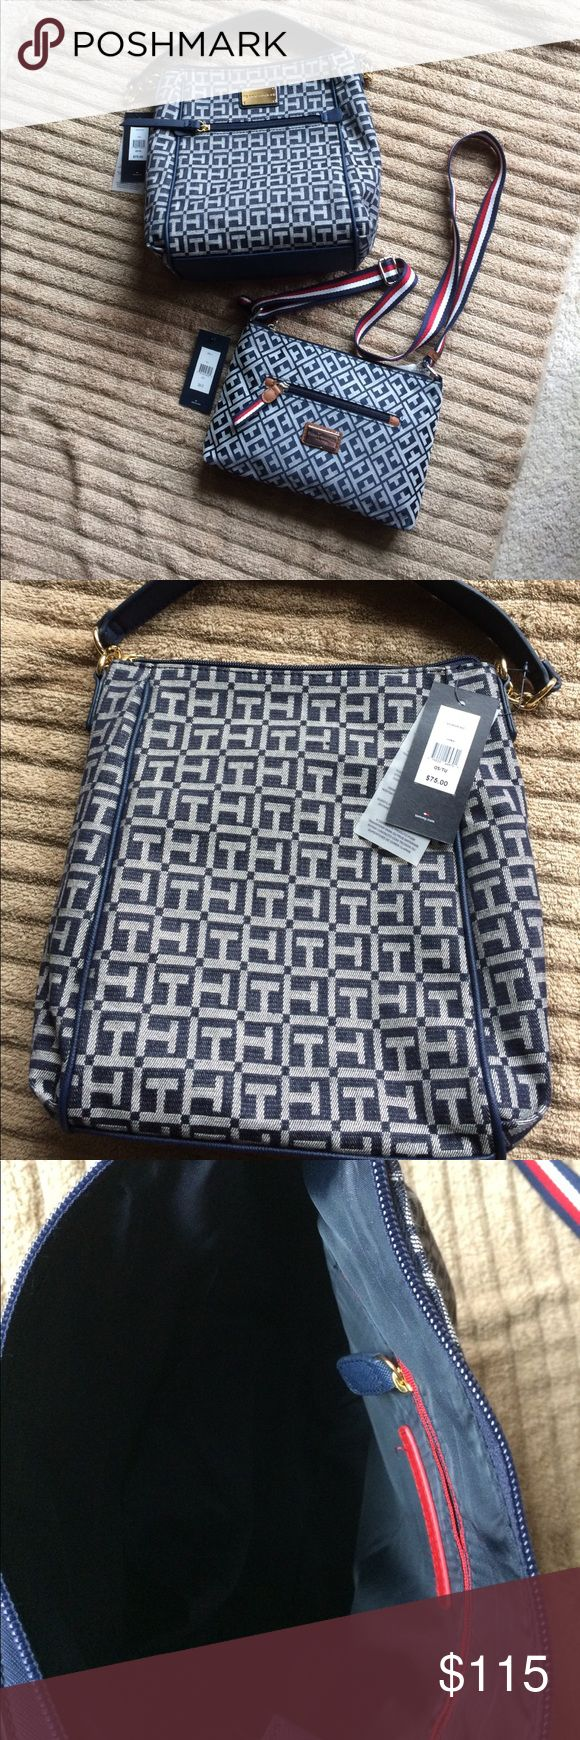 Selling this NWT TOMMY HILFIGER PURSES on Poshmark! My username is: kdelwiche. #shopmycloset #poshmark #fashion #shopping #style #forsale #Tommy Hilfiger #Handbags